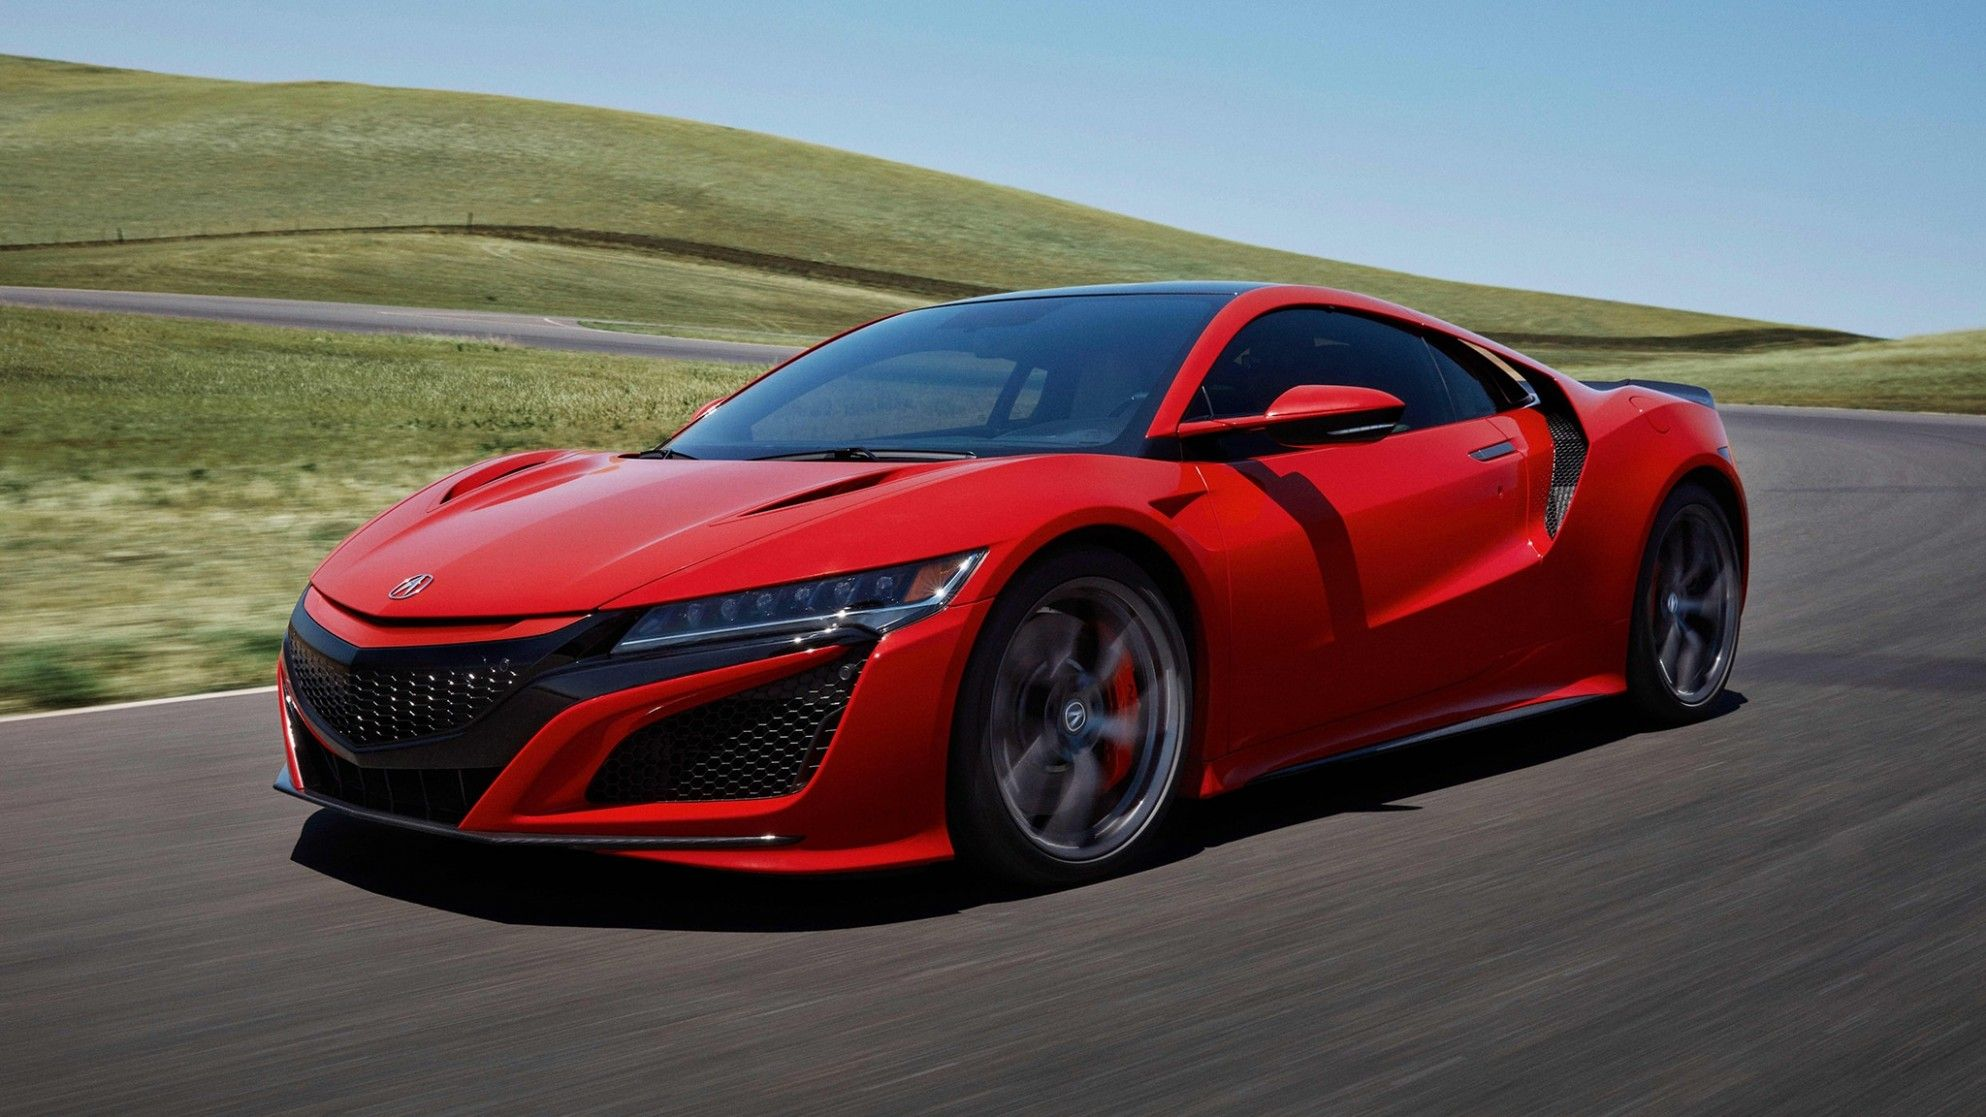 2021 Honda Nsx In 2020 With Images Nsx Acura Nsx Sports Car